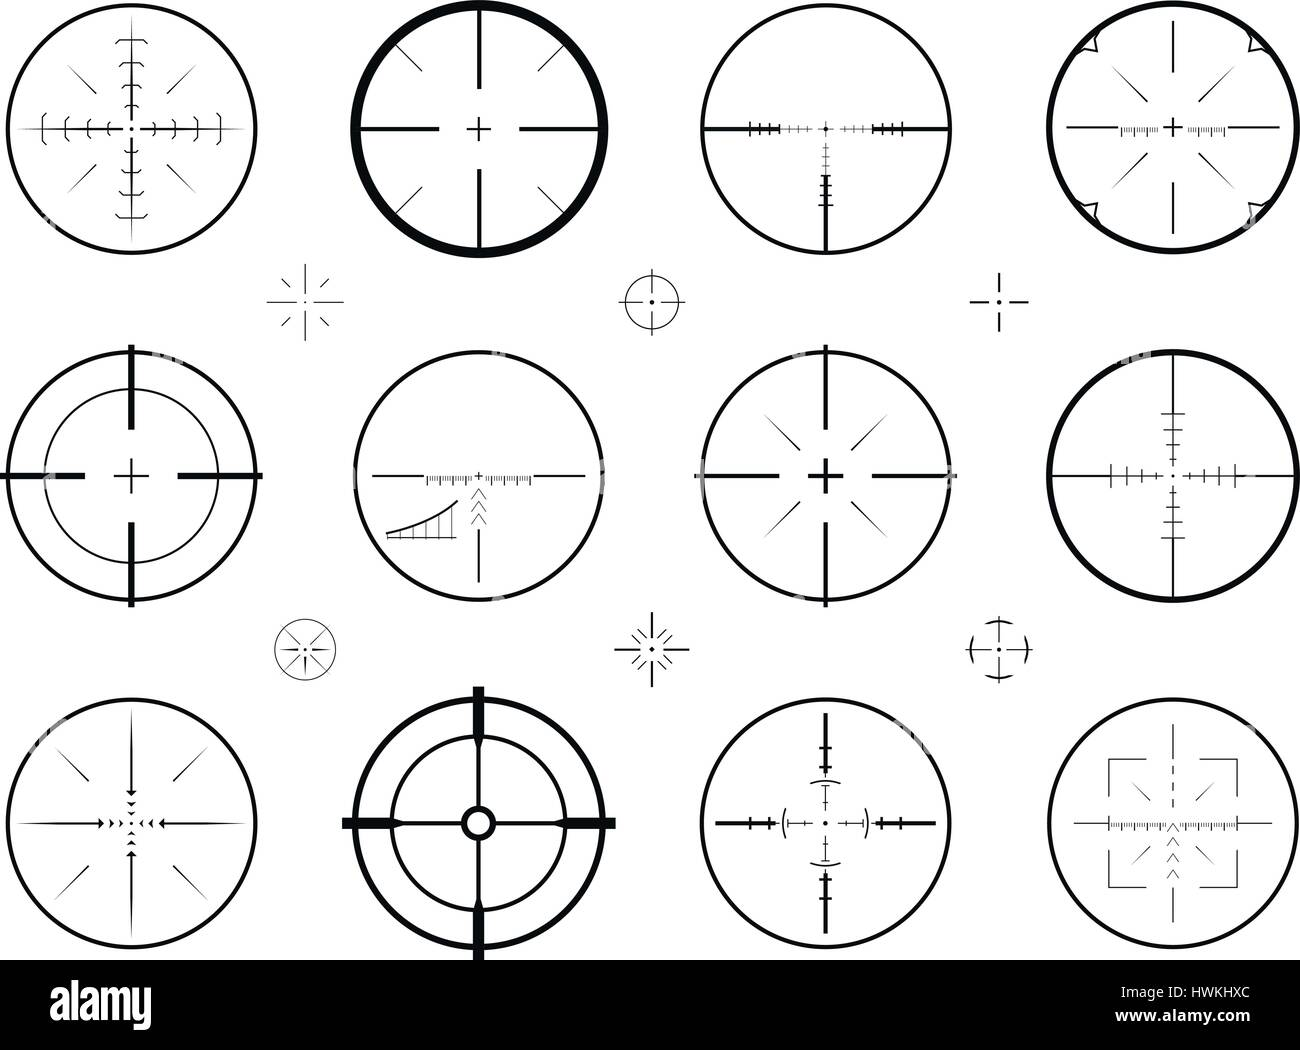 Target, sight sniper set of icons. Hunting, rifle scope, crosshair symbol. Vector illustration Stock Vector